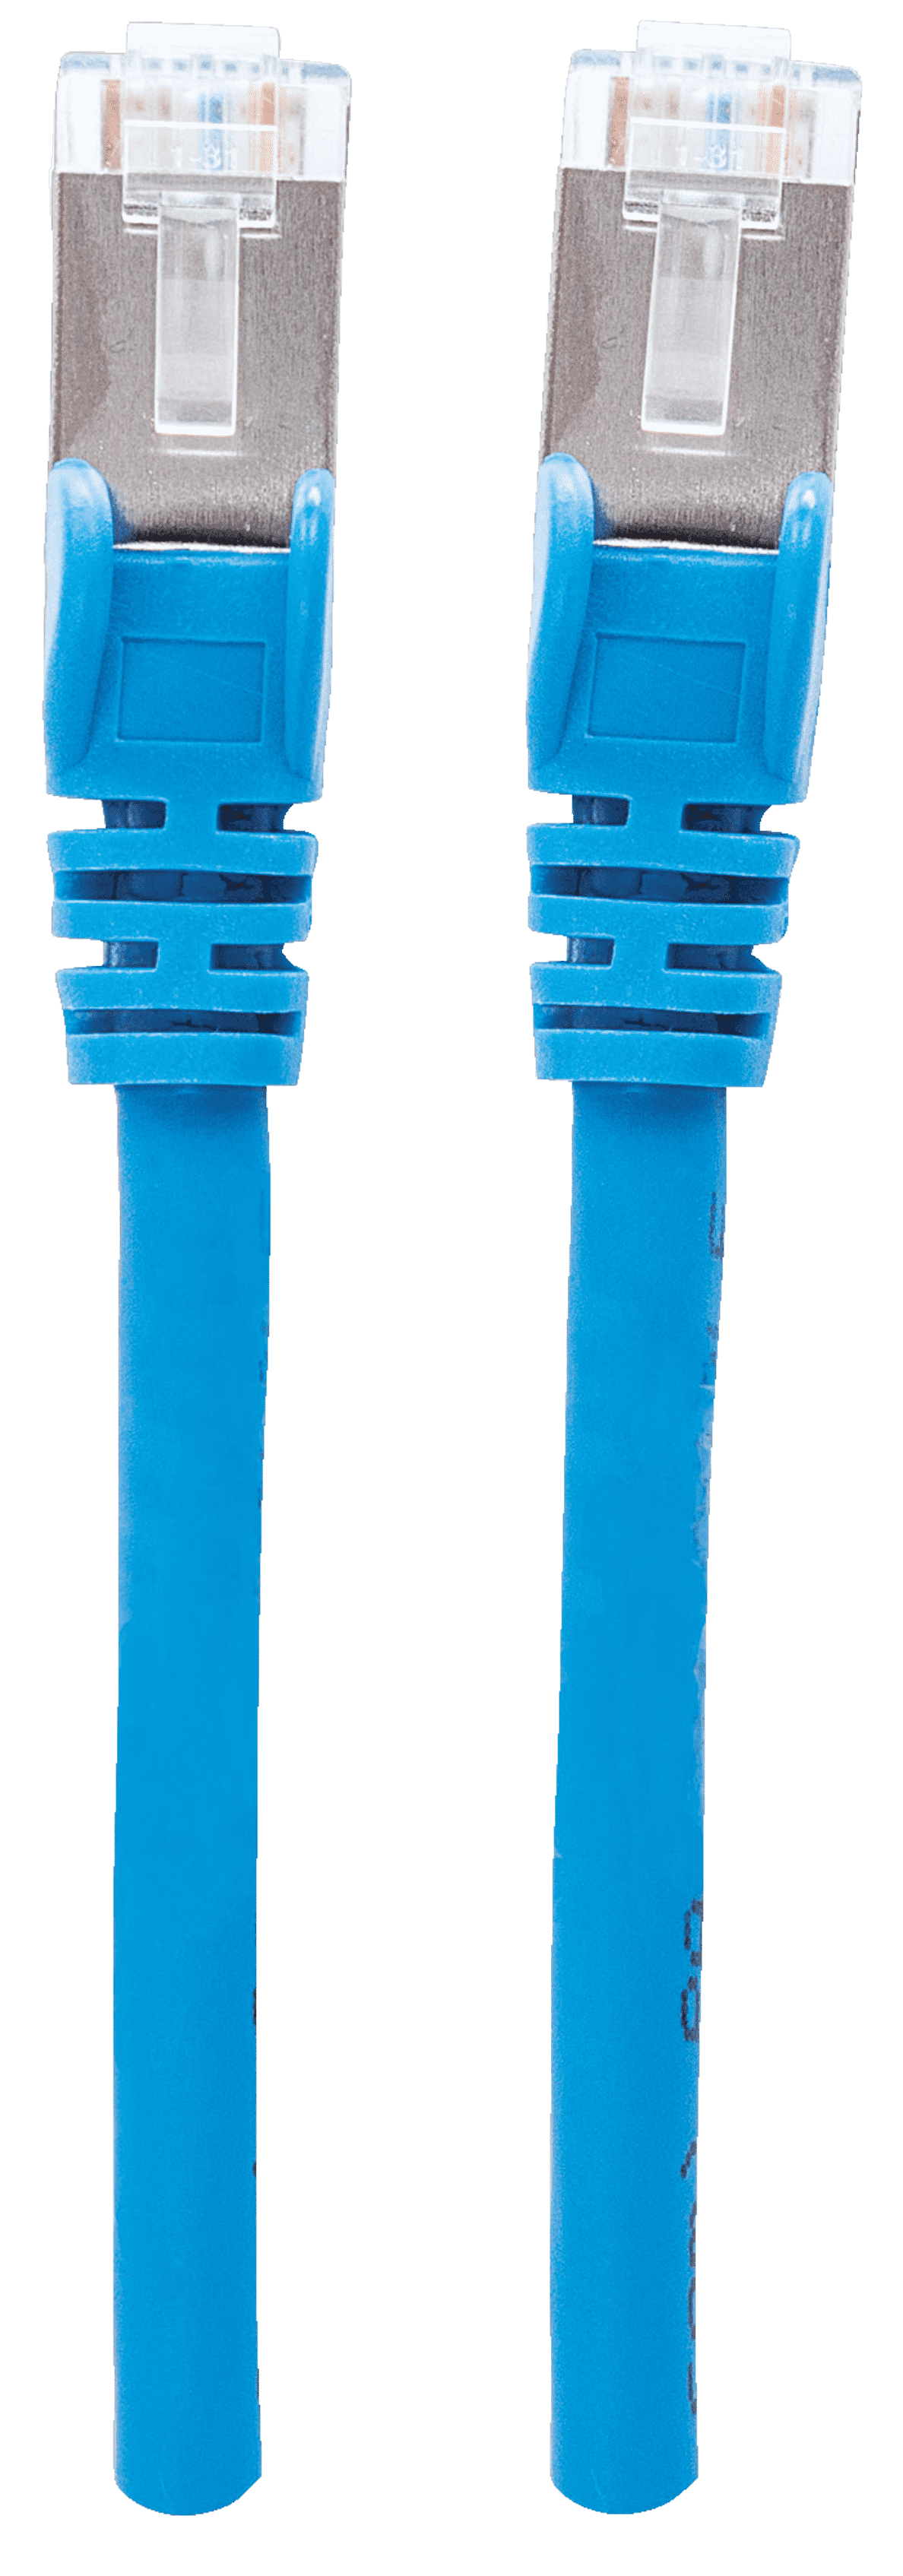 INTELLINET  350723 Patchkabel 0.5 m in Blau | 00766623350723